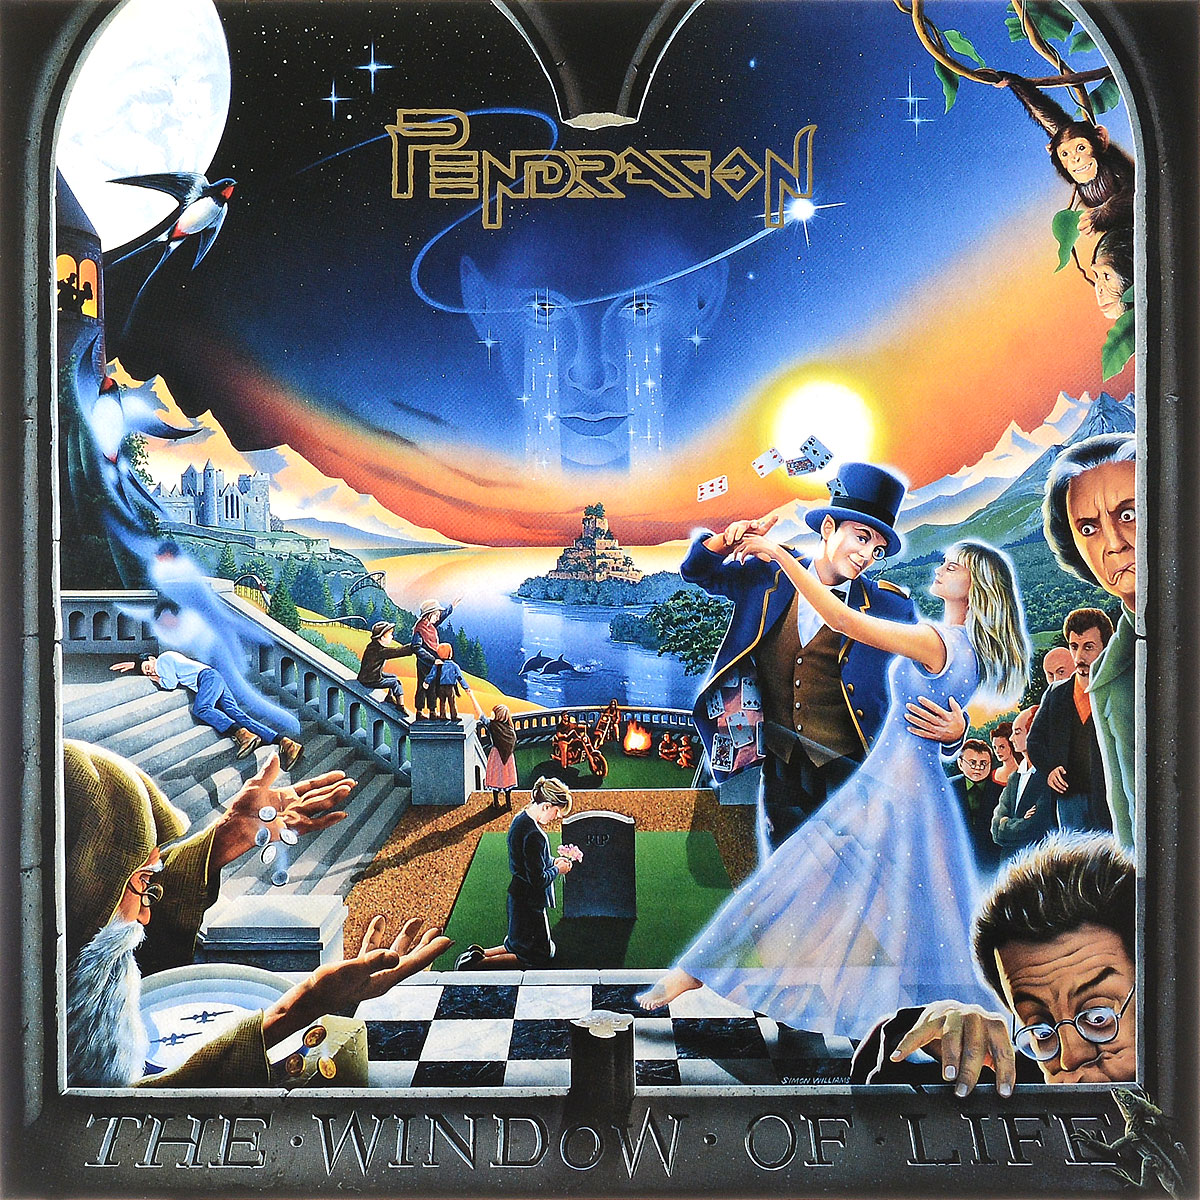 Фото - Pendragon Pendragon. The Window Of Life. 21st Anniversary Deluxe Edition (2LP) cd led zeppelin ii deluxe edition